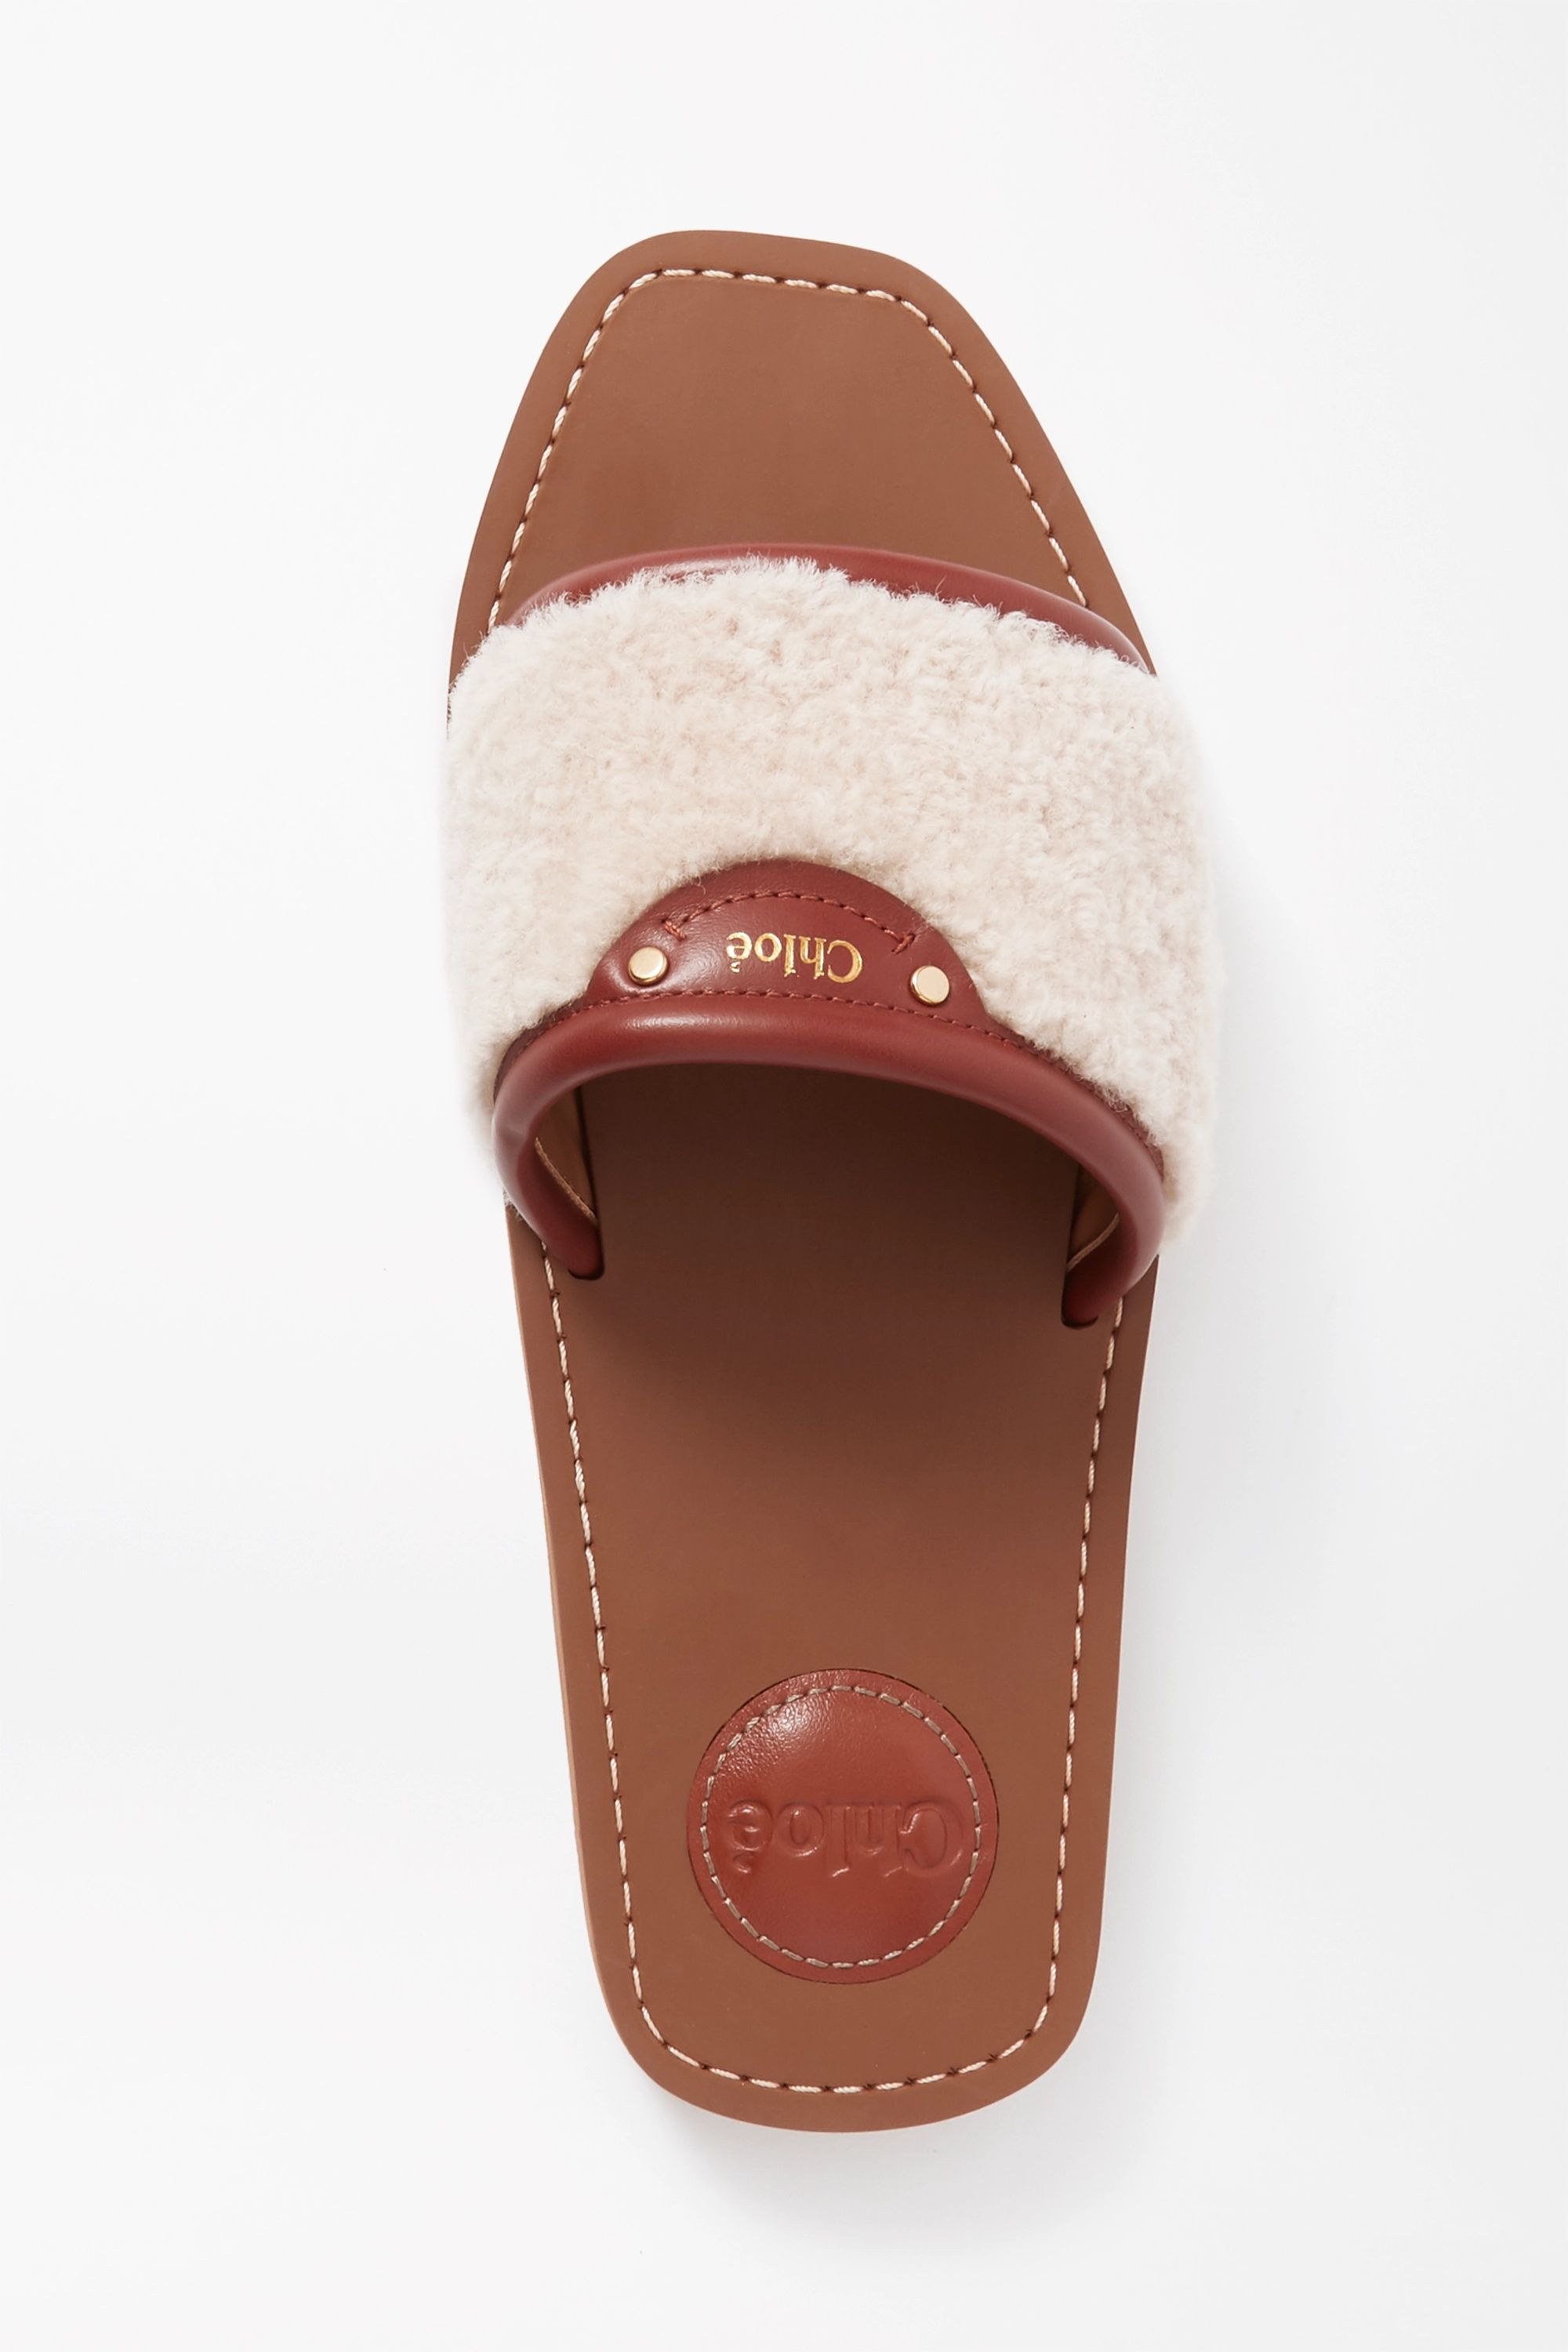 Chloé Woody leather-trimmed shearling slides